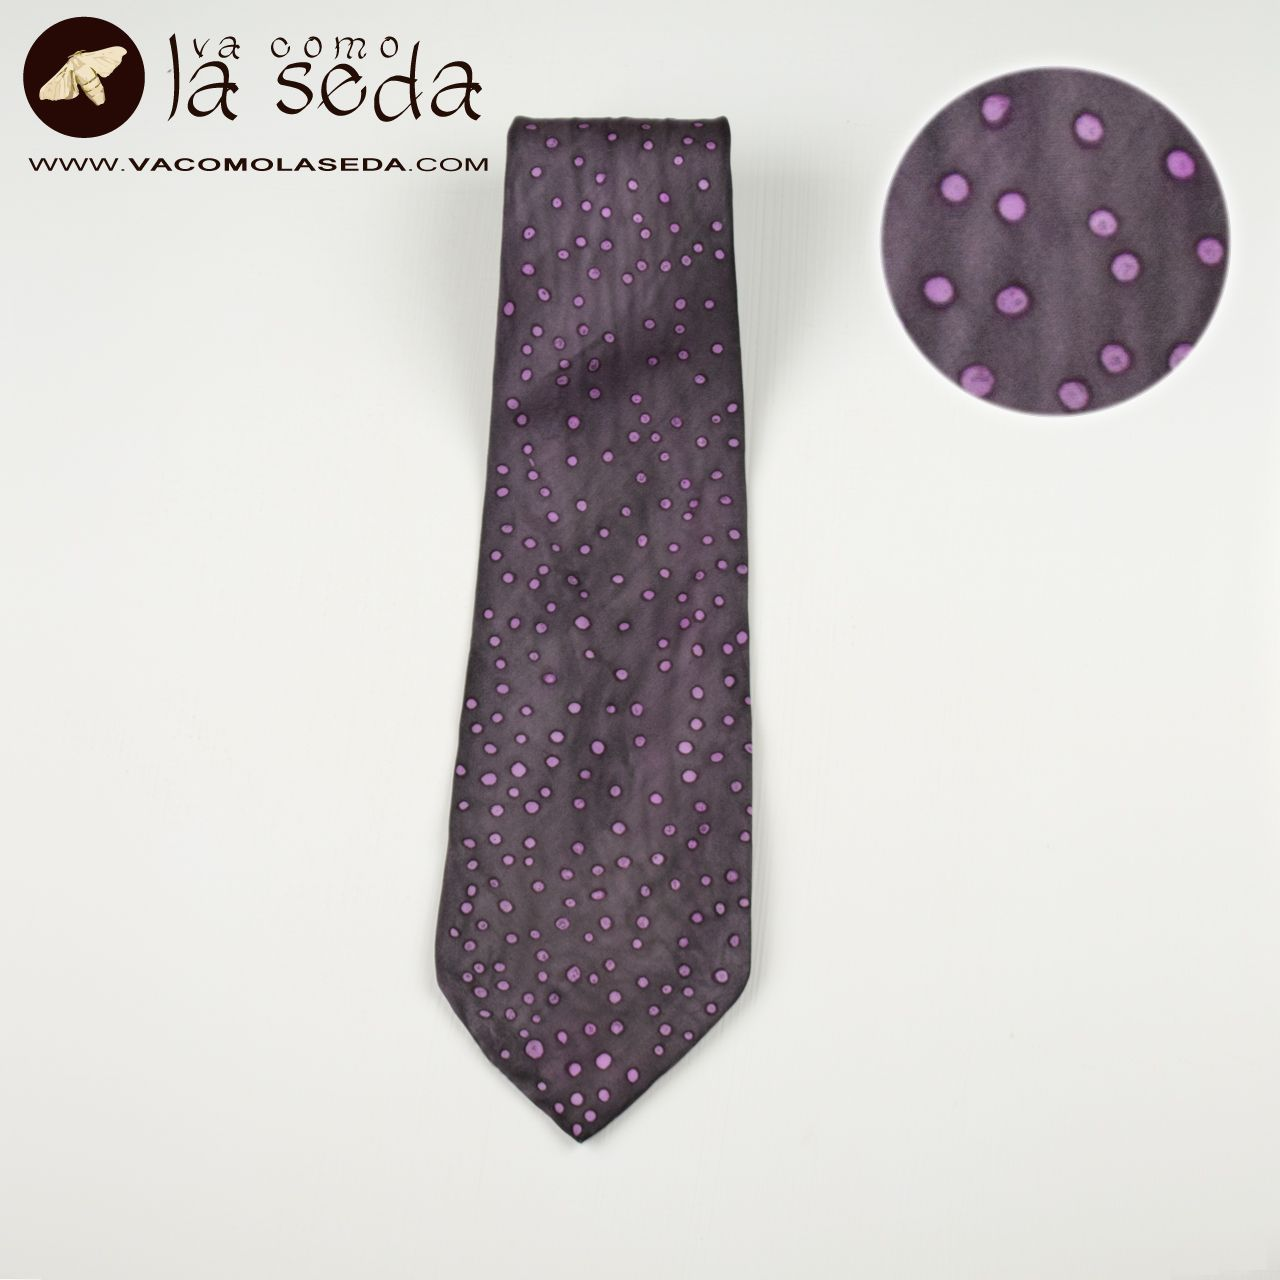 Hand painted silk tie.One of a kind. Corbata de seda pintada a mano.